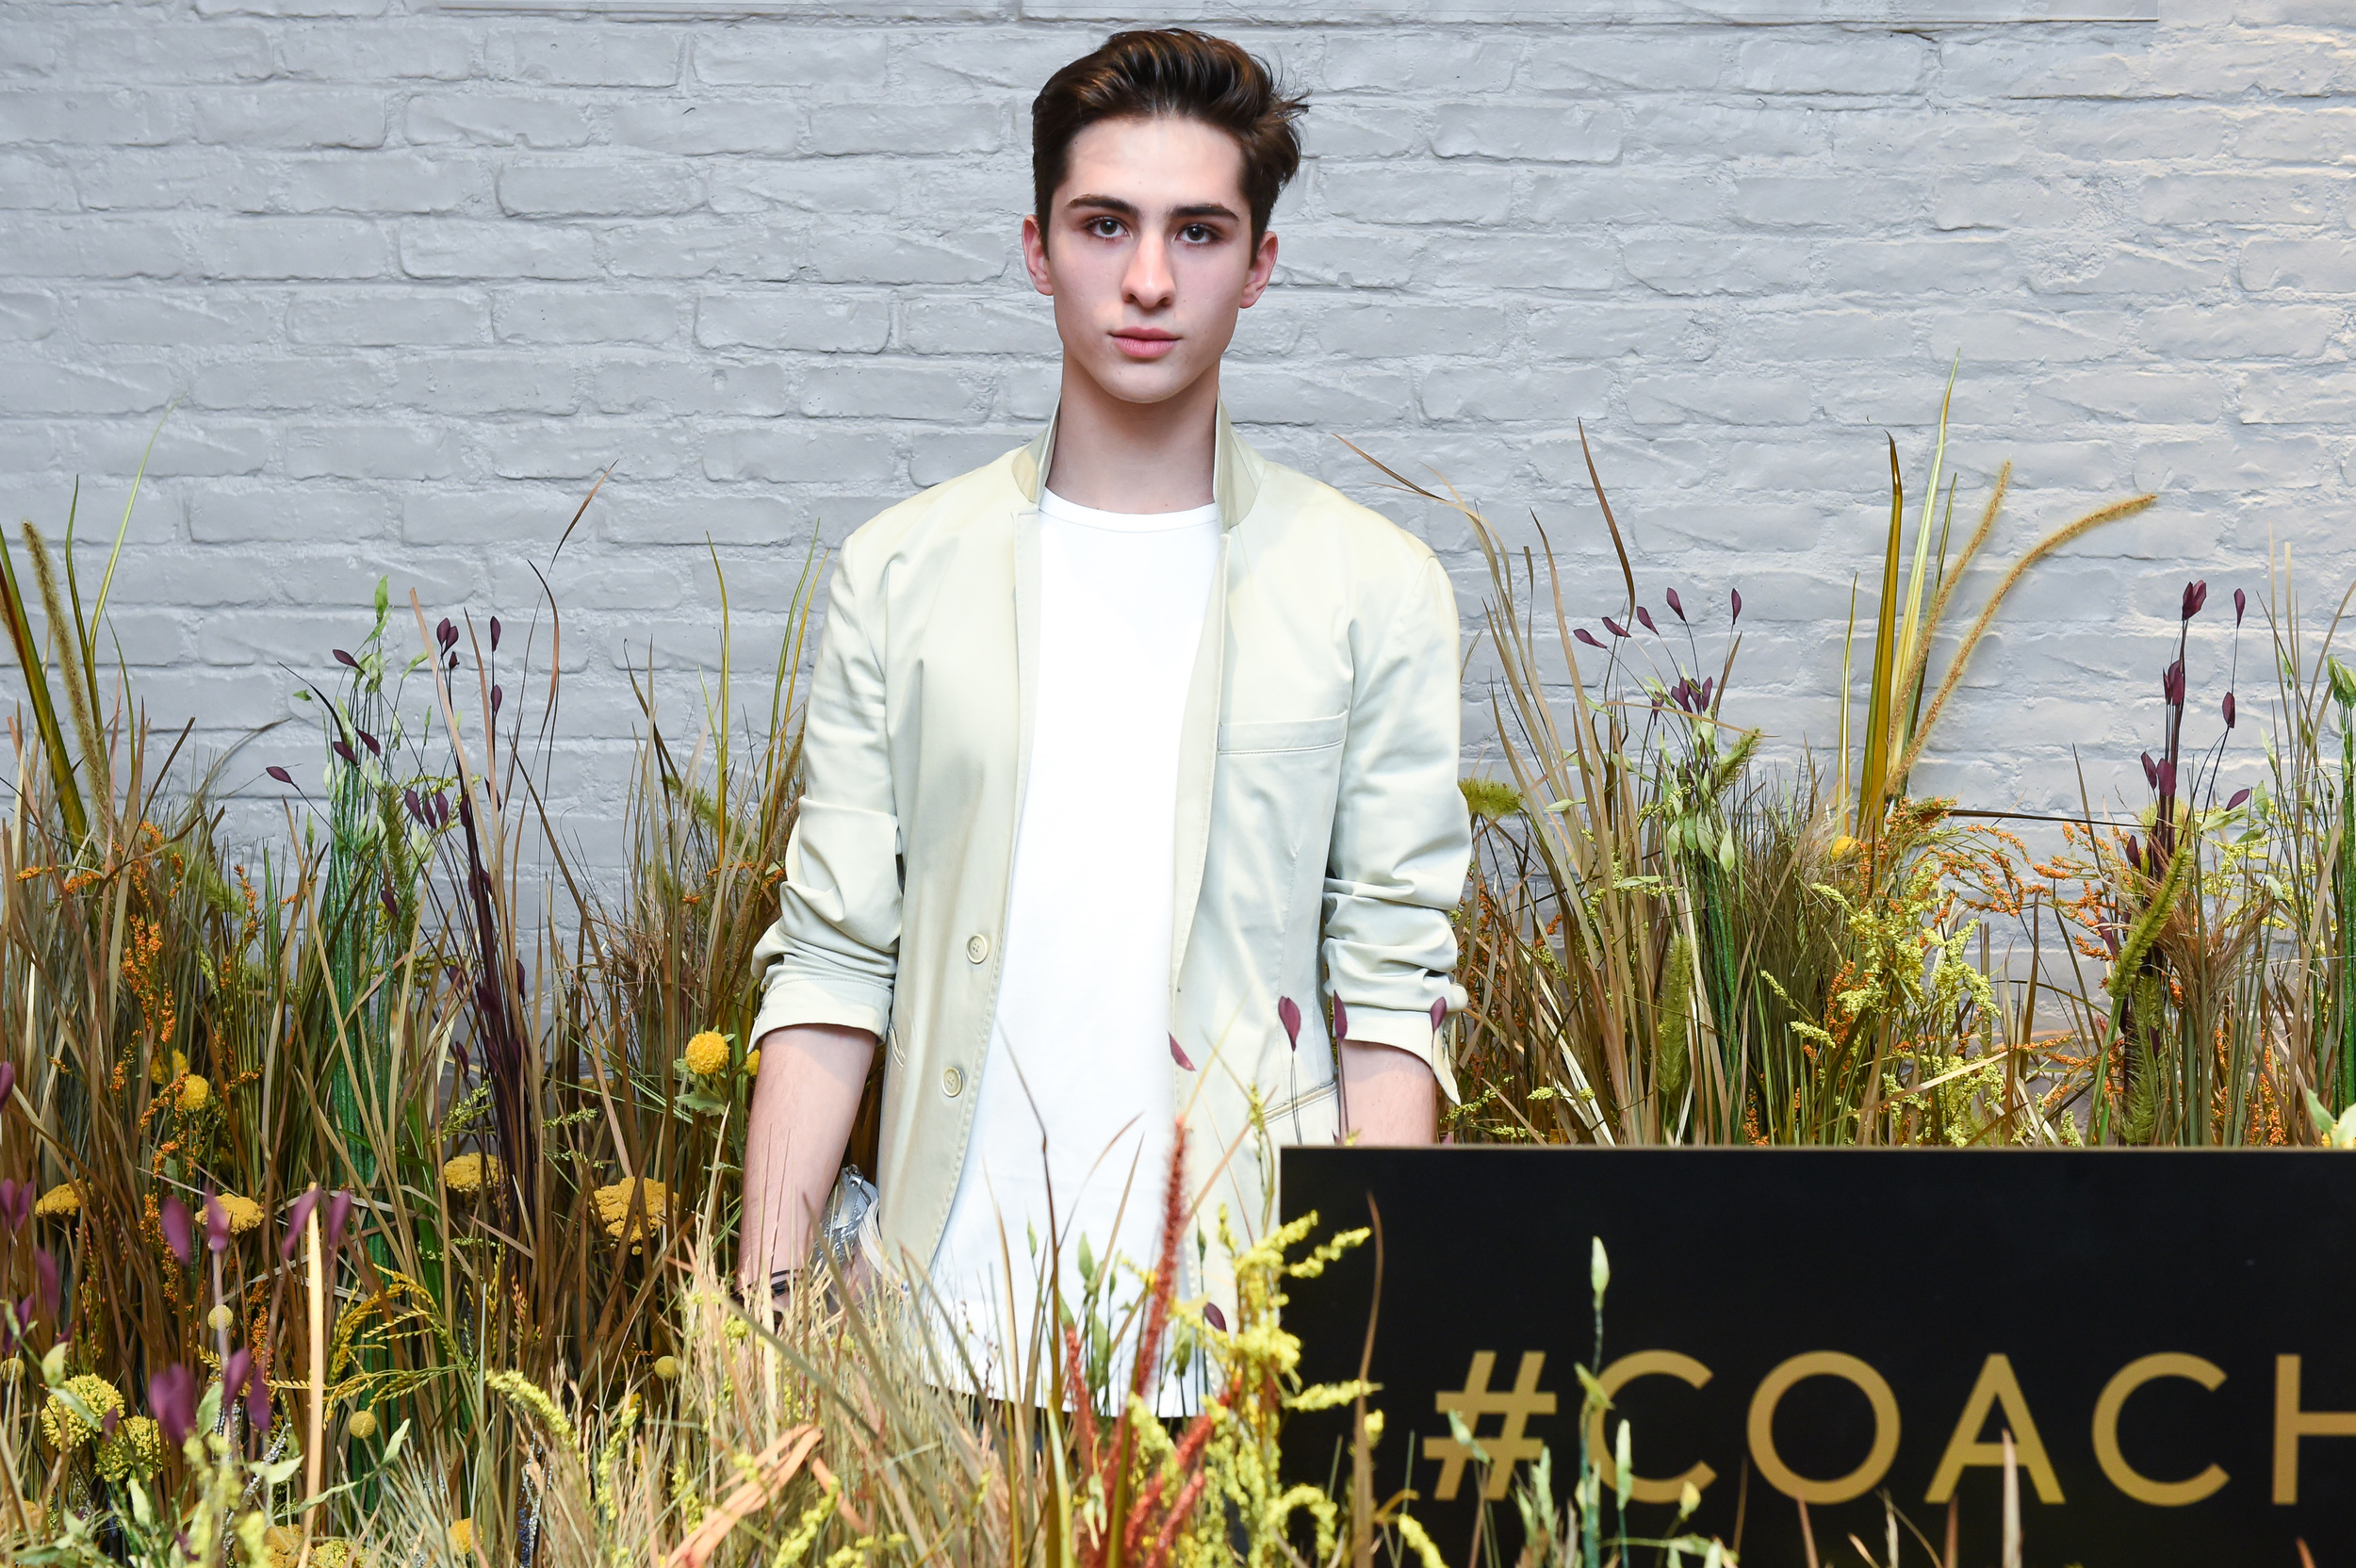 Ryan Matthew at the #Coach1941 Event in Soho.